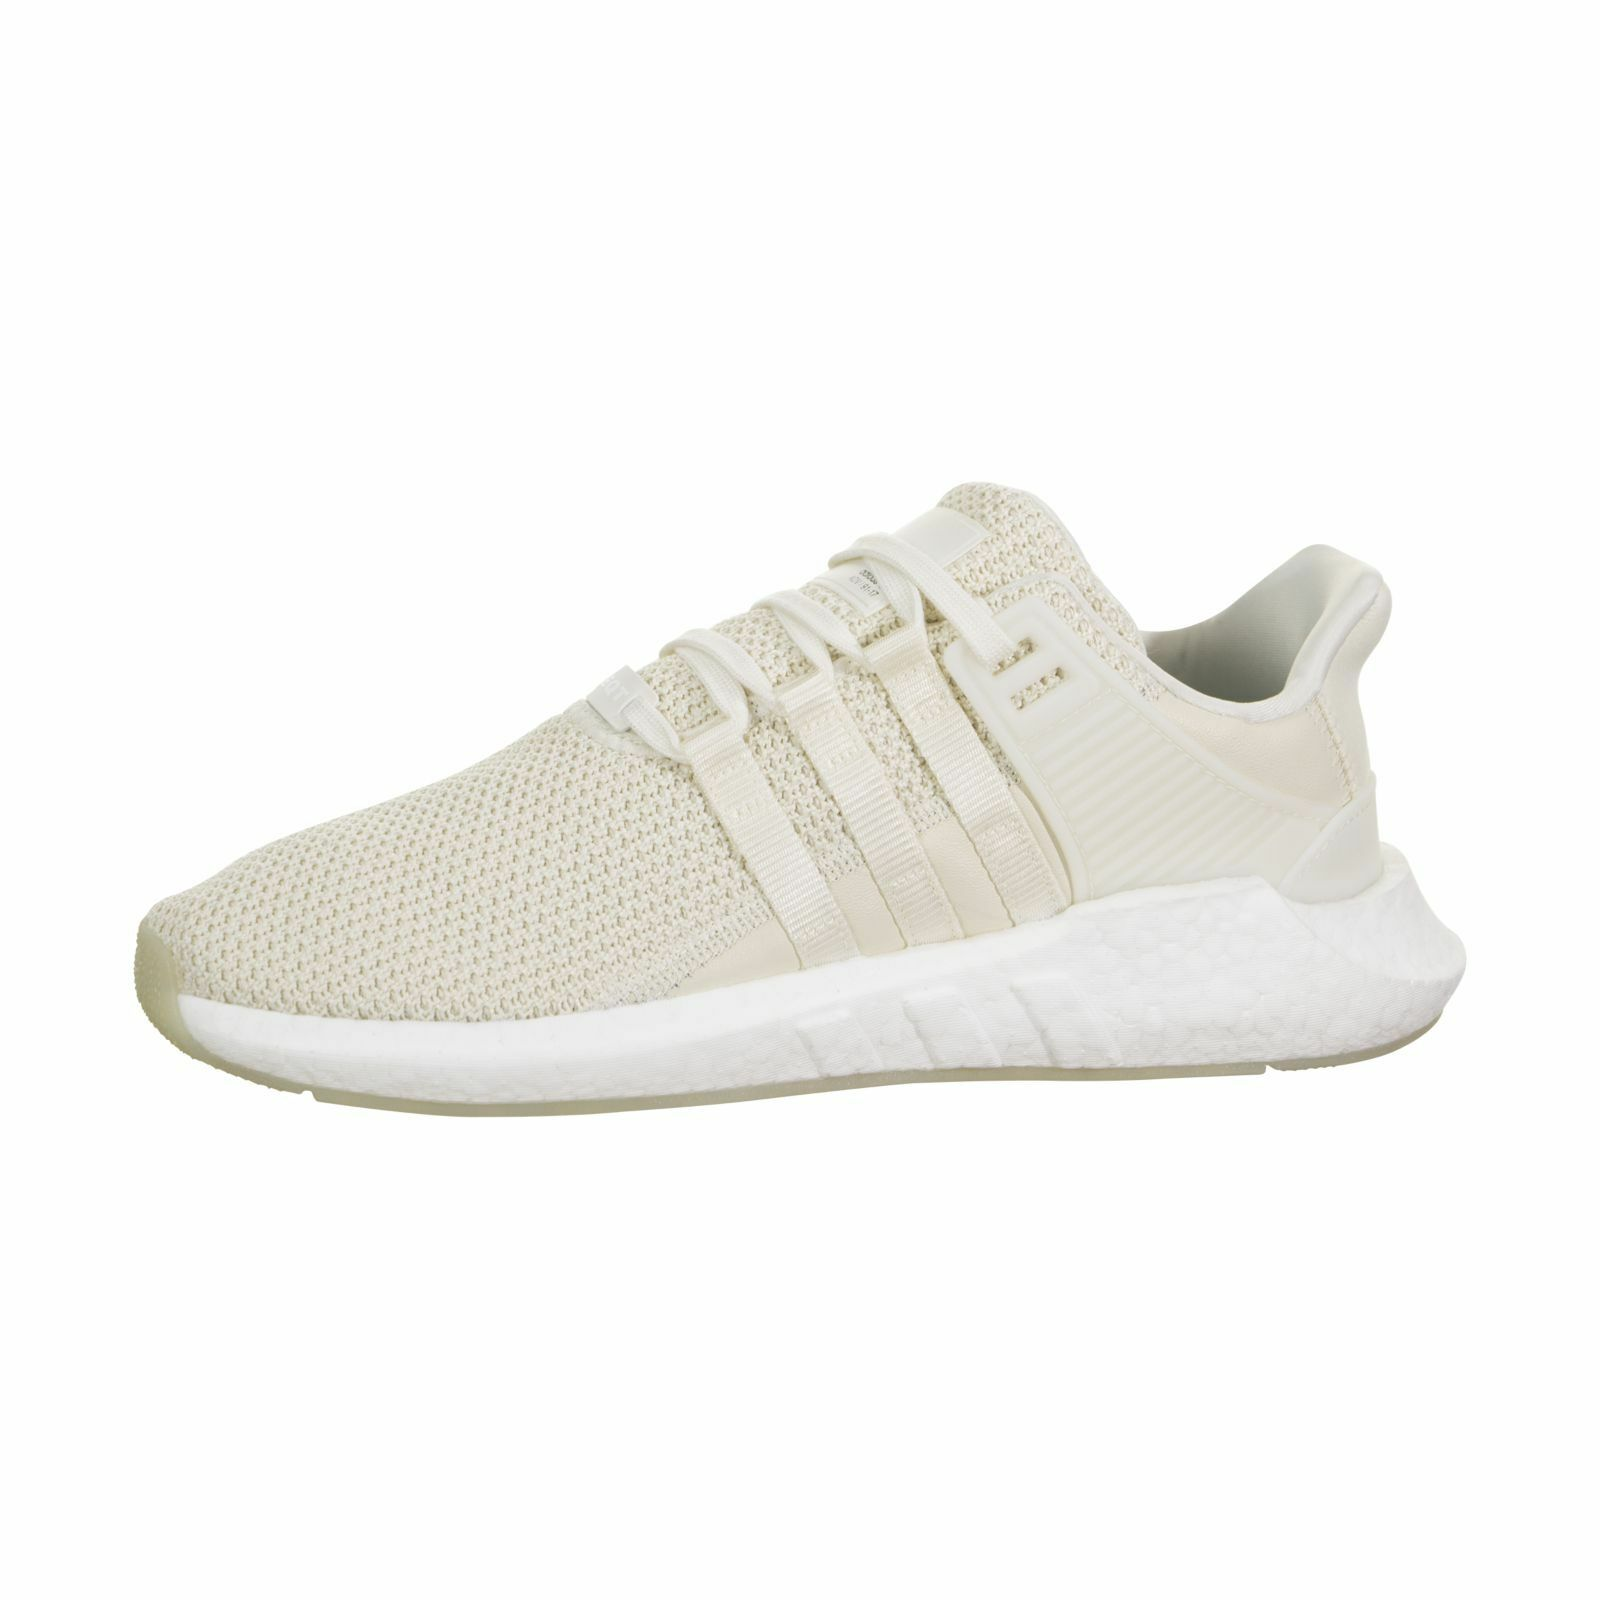 Cheap Nice Adidas EQT Support 93/17 on the sale